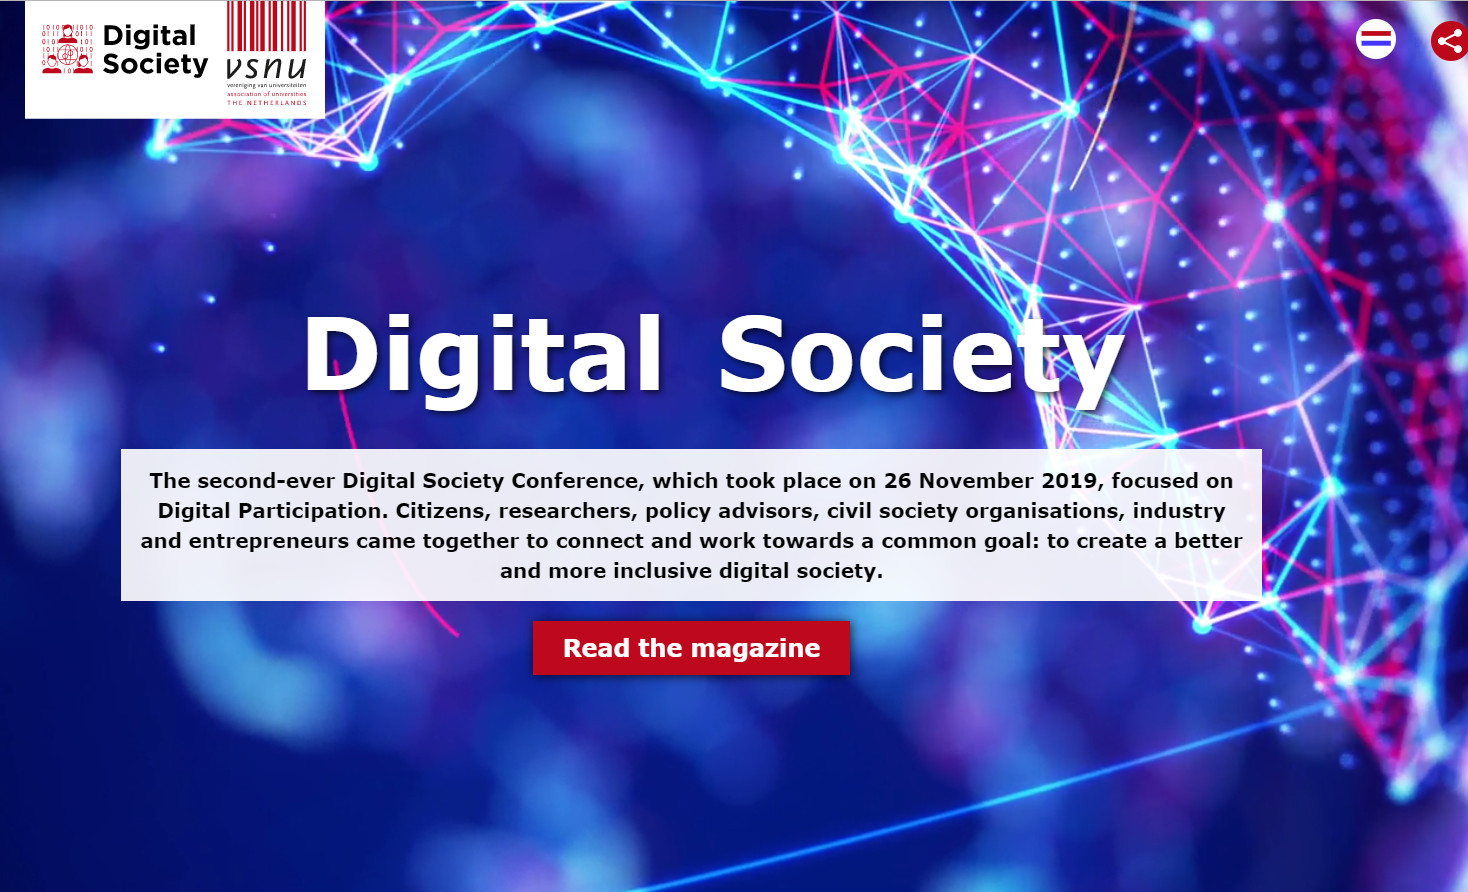 Digital Society Conference 2019 e-zine